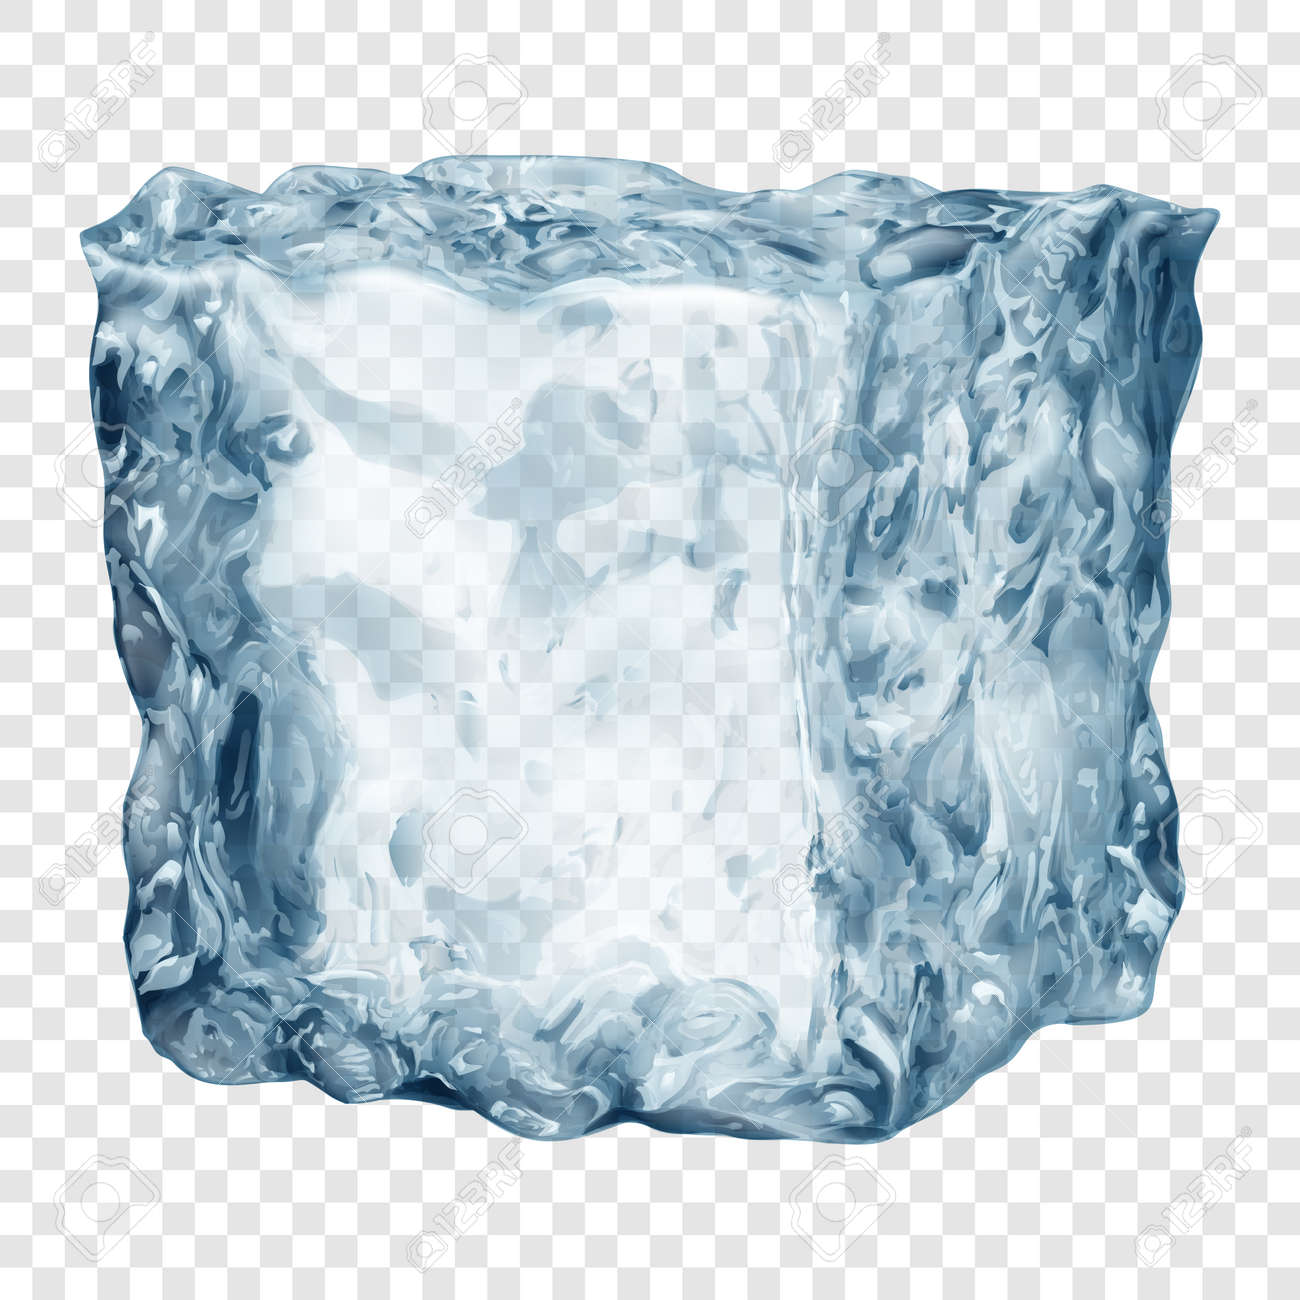 Realistic translucent ice cube in light blue color isolated on transparent background. Transparency only in vector format - 143314508